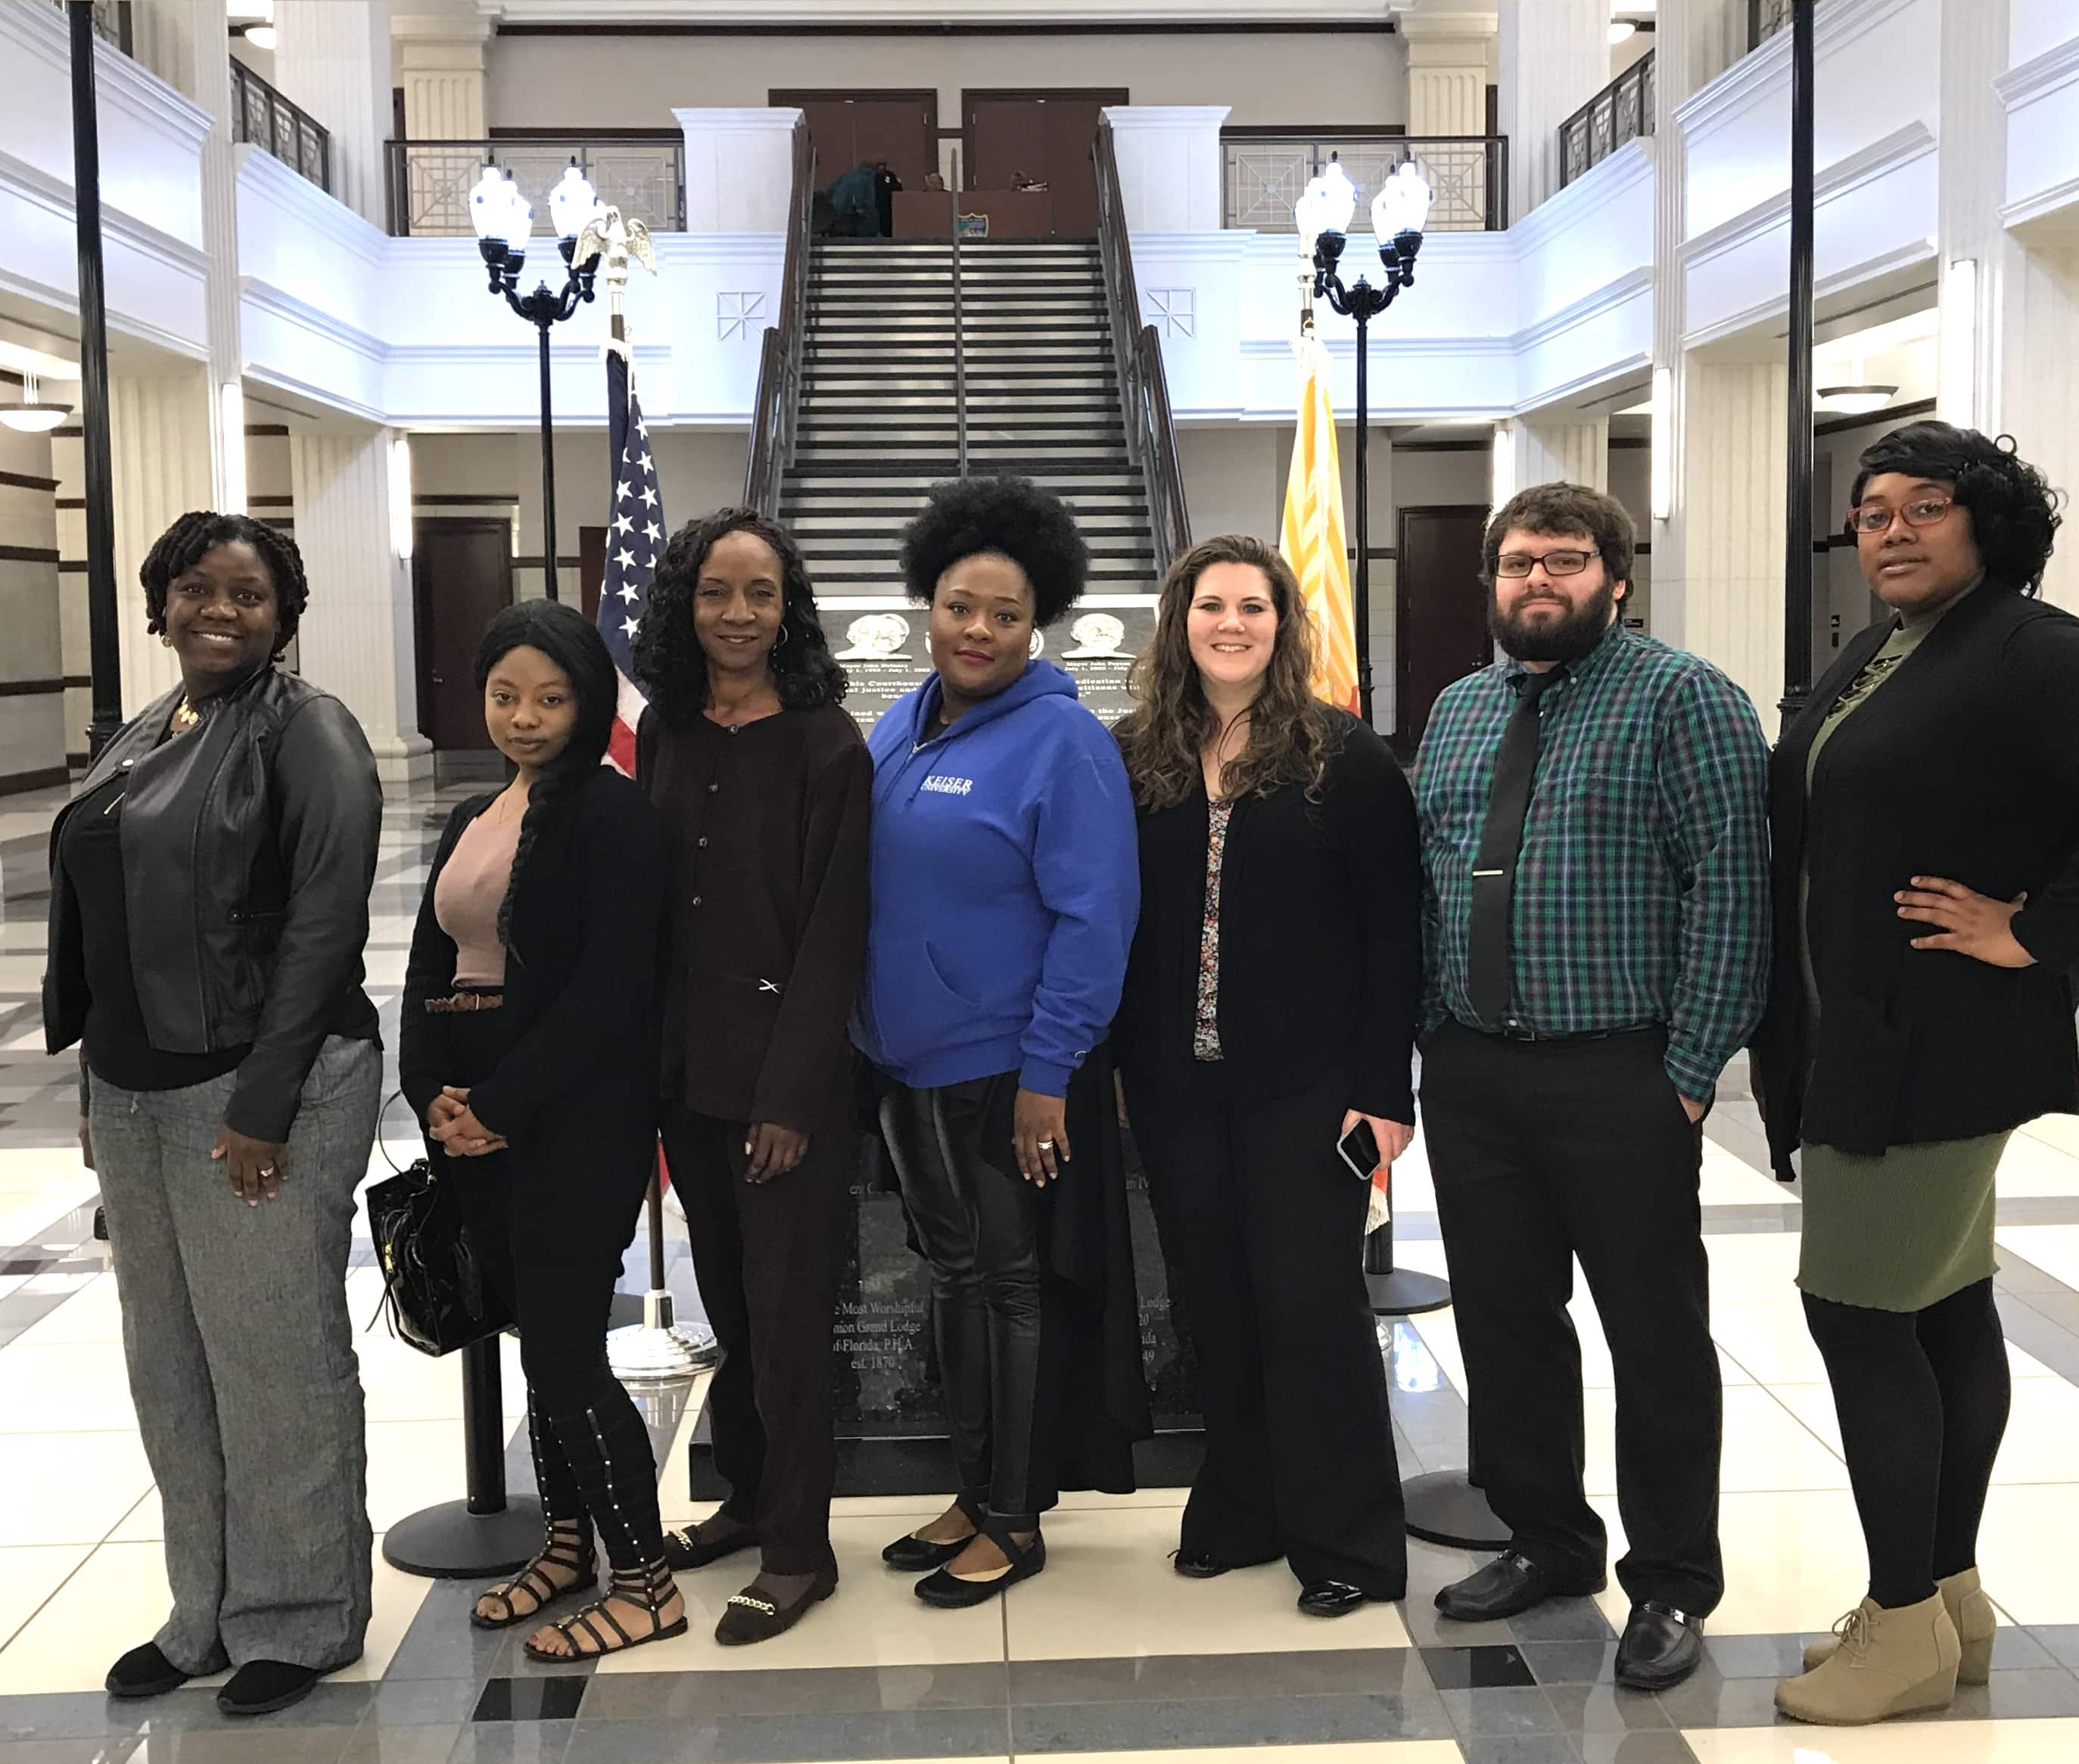 Forensic Students Visit Courthouse During Homicide Sentencing